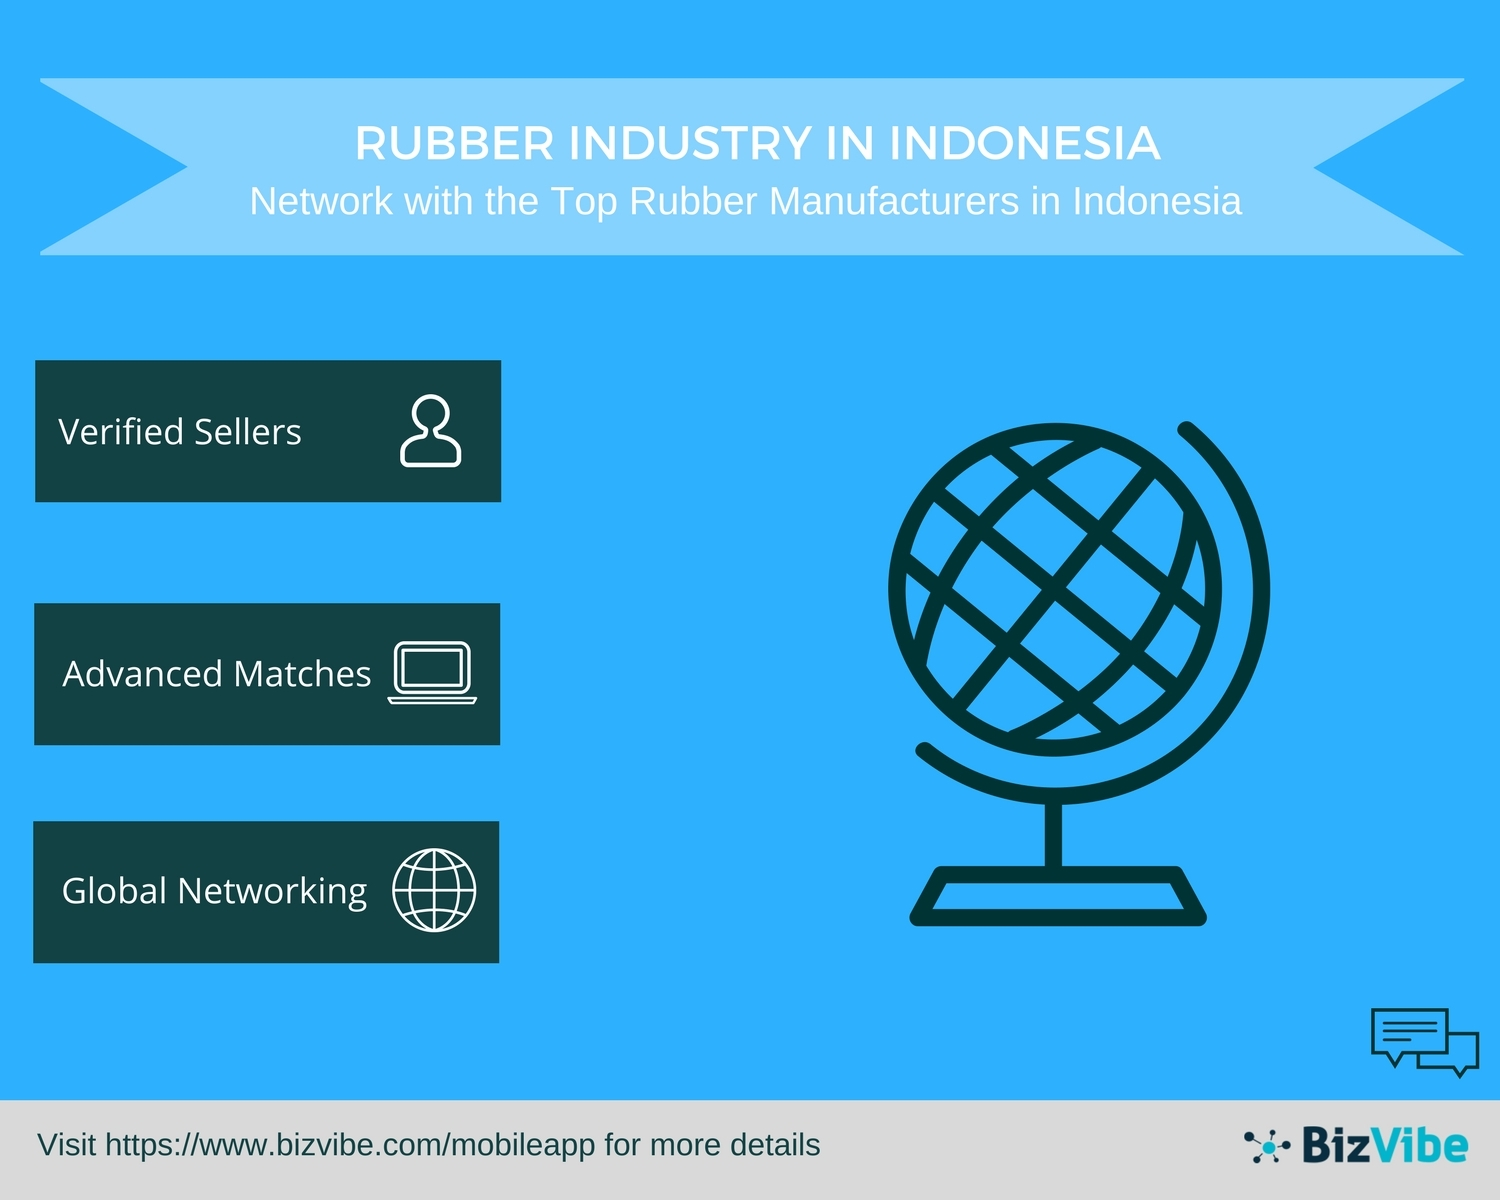 Intellasia East Asia News - Rubber Manufacturers in Indonesia